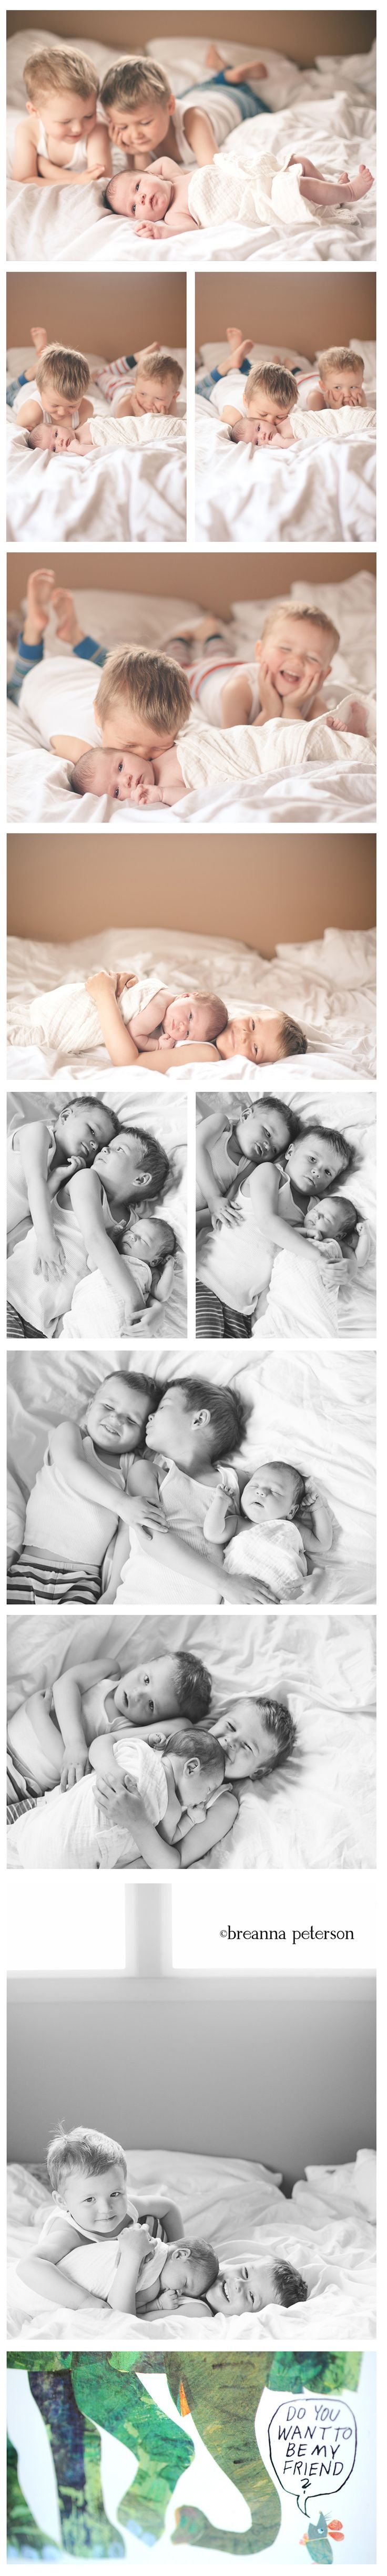 lifestyle newborn shoot with siblings